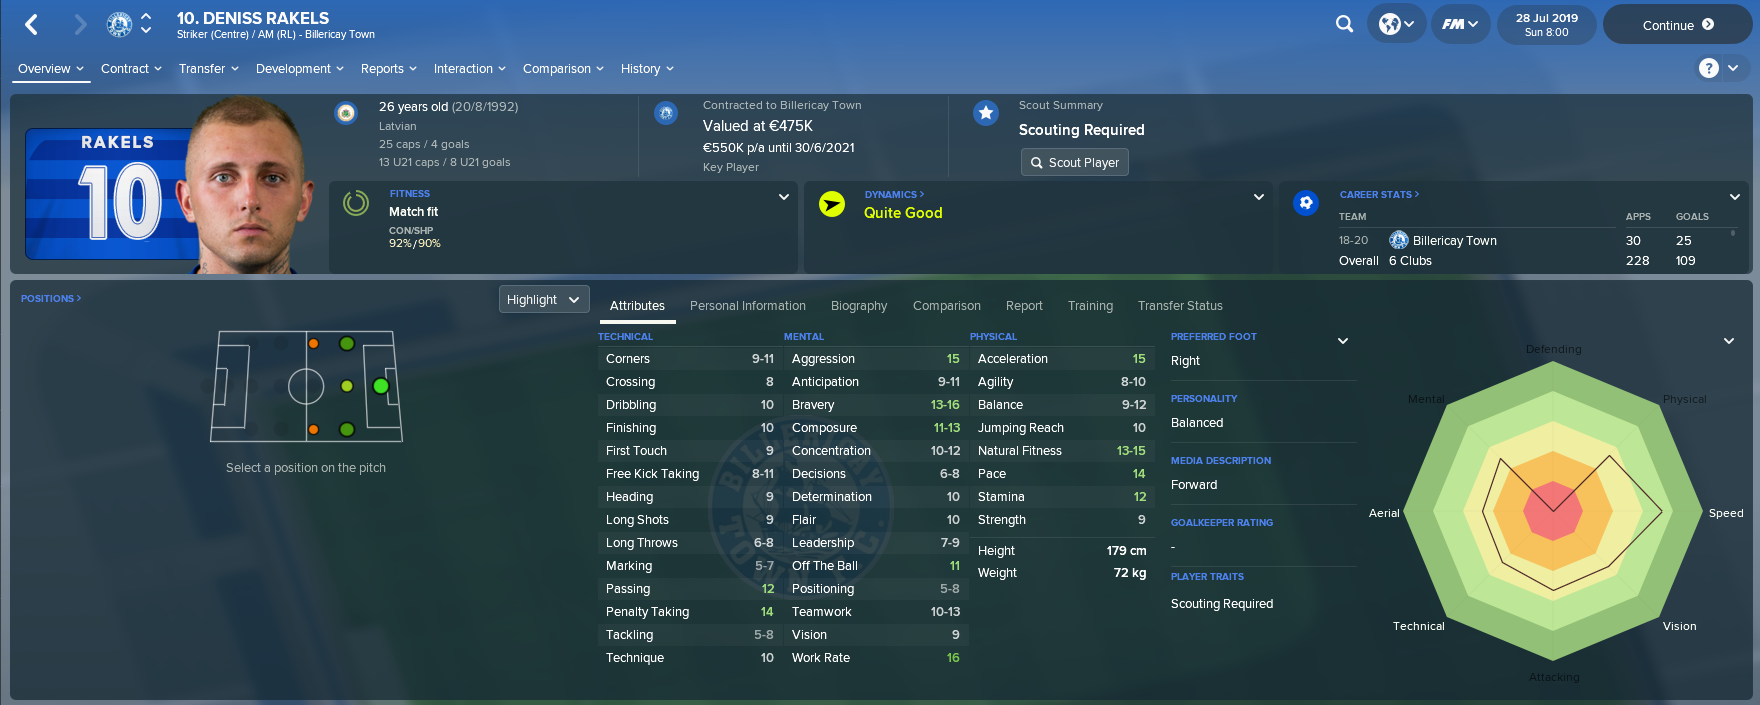 billericay_player_huge_wages.png